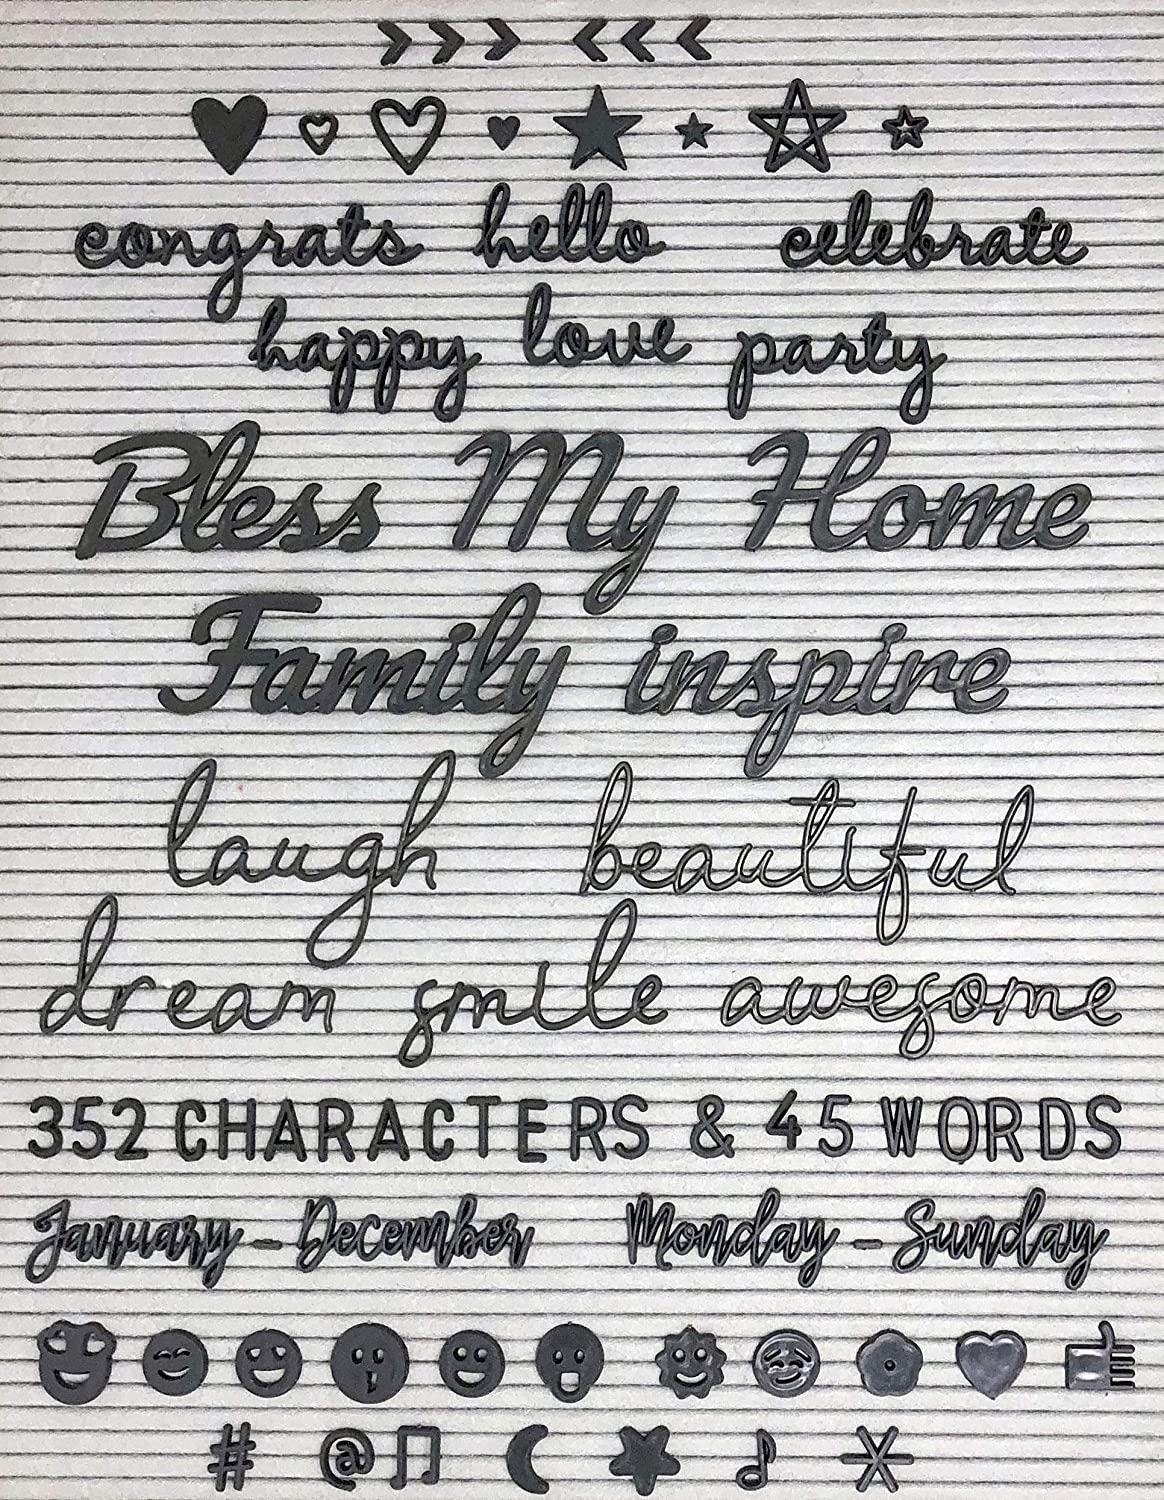 Black Letter Board Letters and Words for Changeable Letter Boards and Felt Letterboards - 397 Piece Mega Bundle | 45 1-3 Inch Cursive Words | Emojis, Characters, Letters, Symbols | Birth Announcements Word Notions